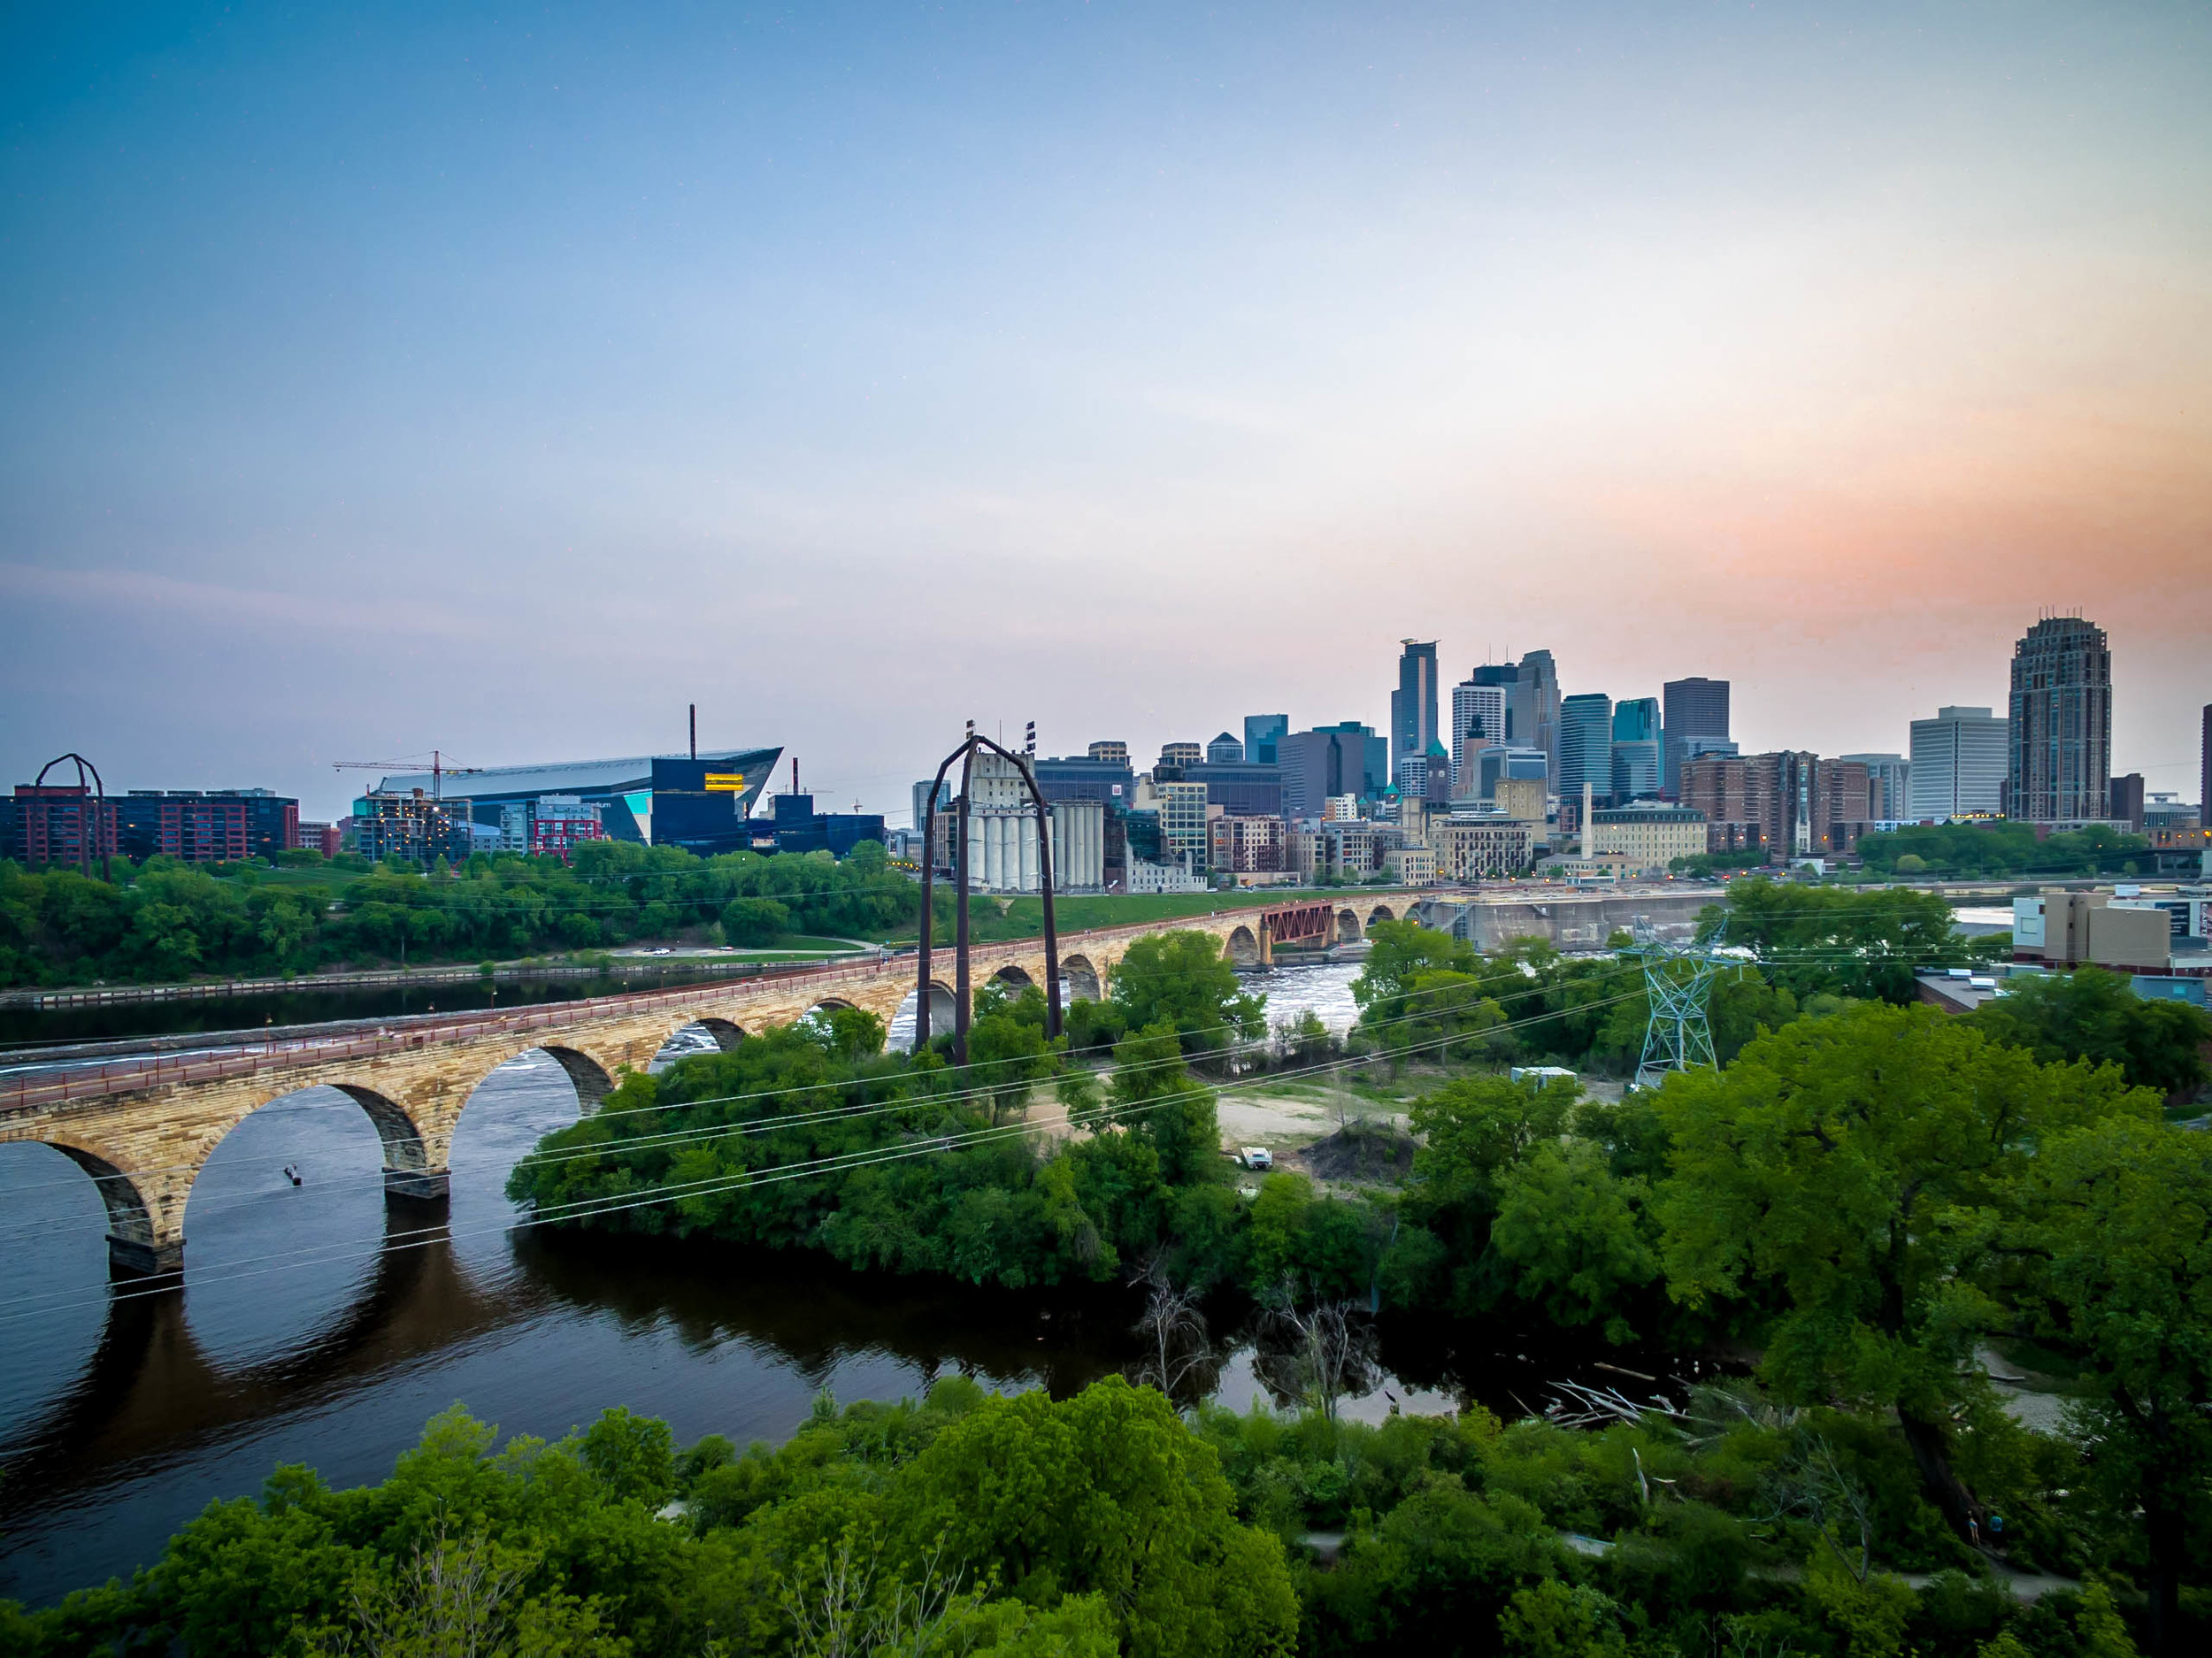 Stone Arch Bridge Youtube help-2.jpg